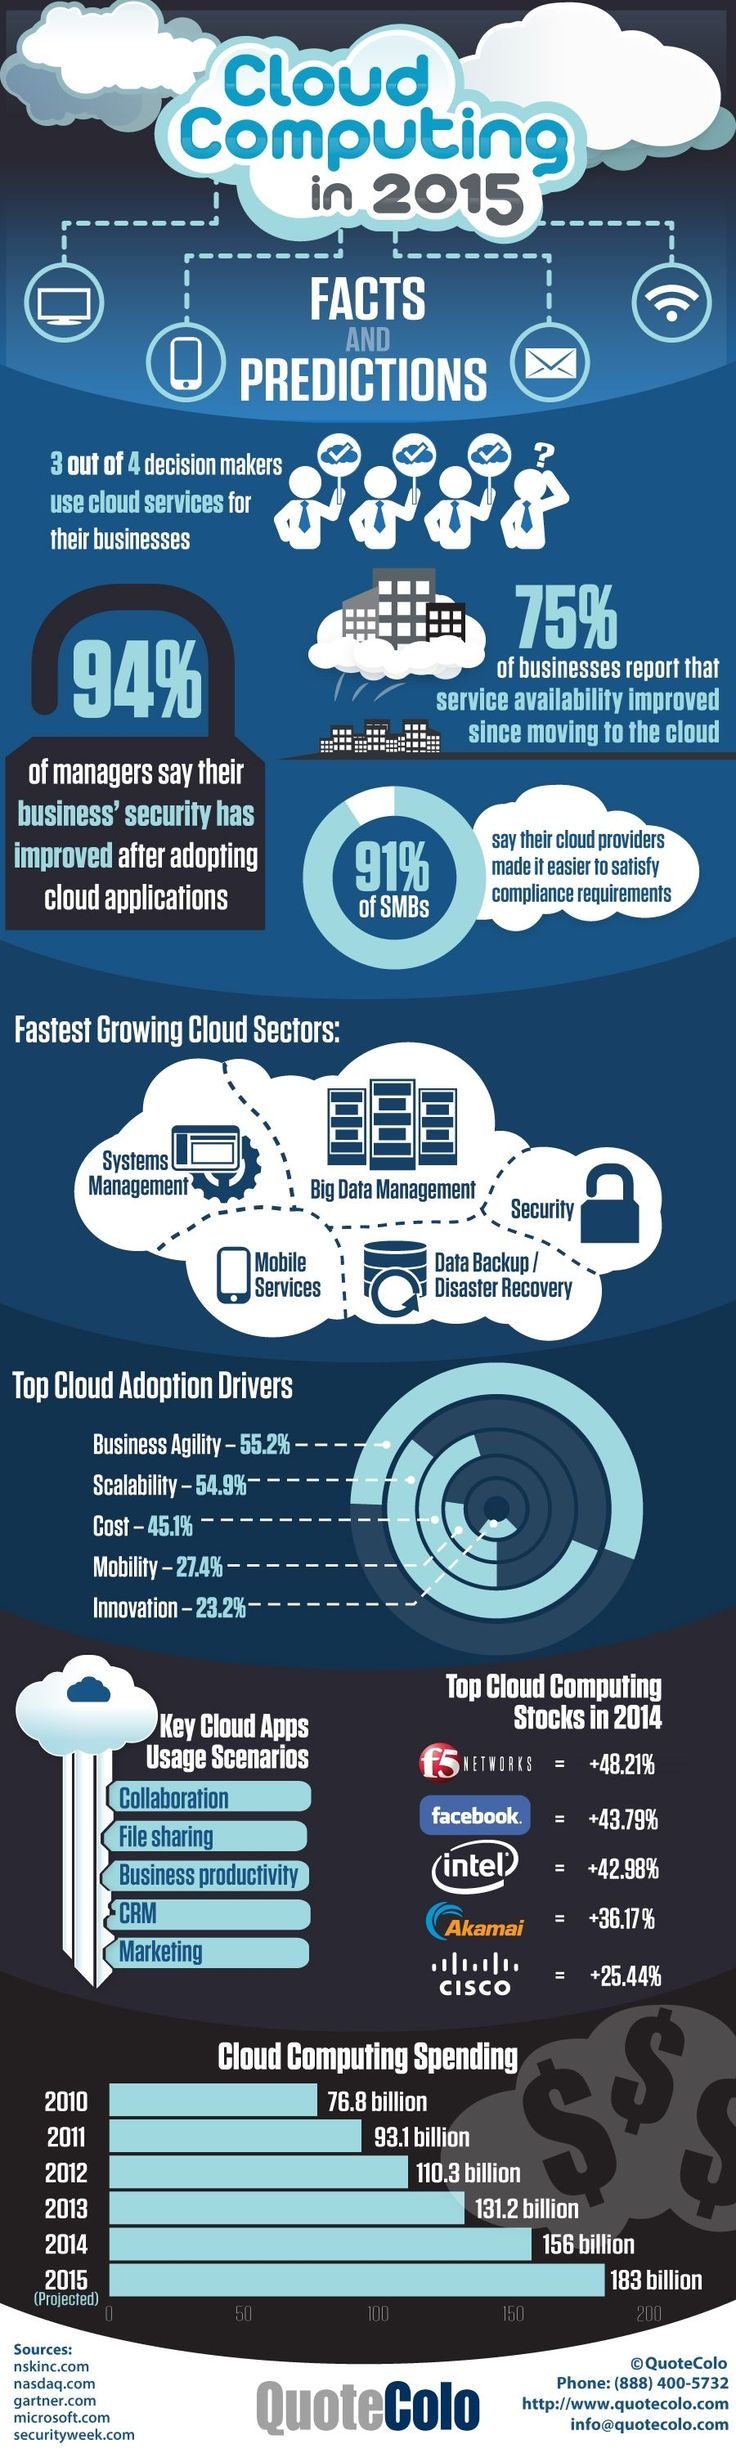 Cloud Computing in 2015  #infographic #infographics #cloudcomputing. http://cloudcomputingguide.vidlify.net